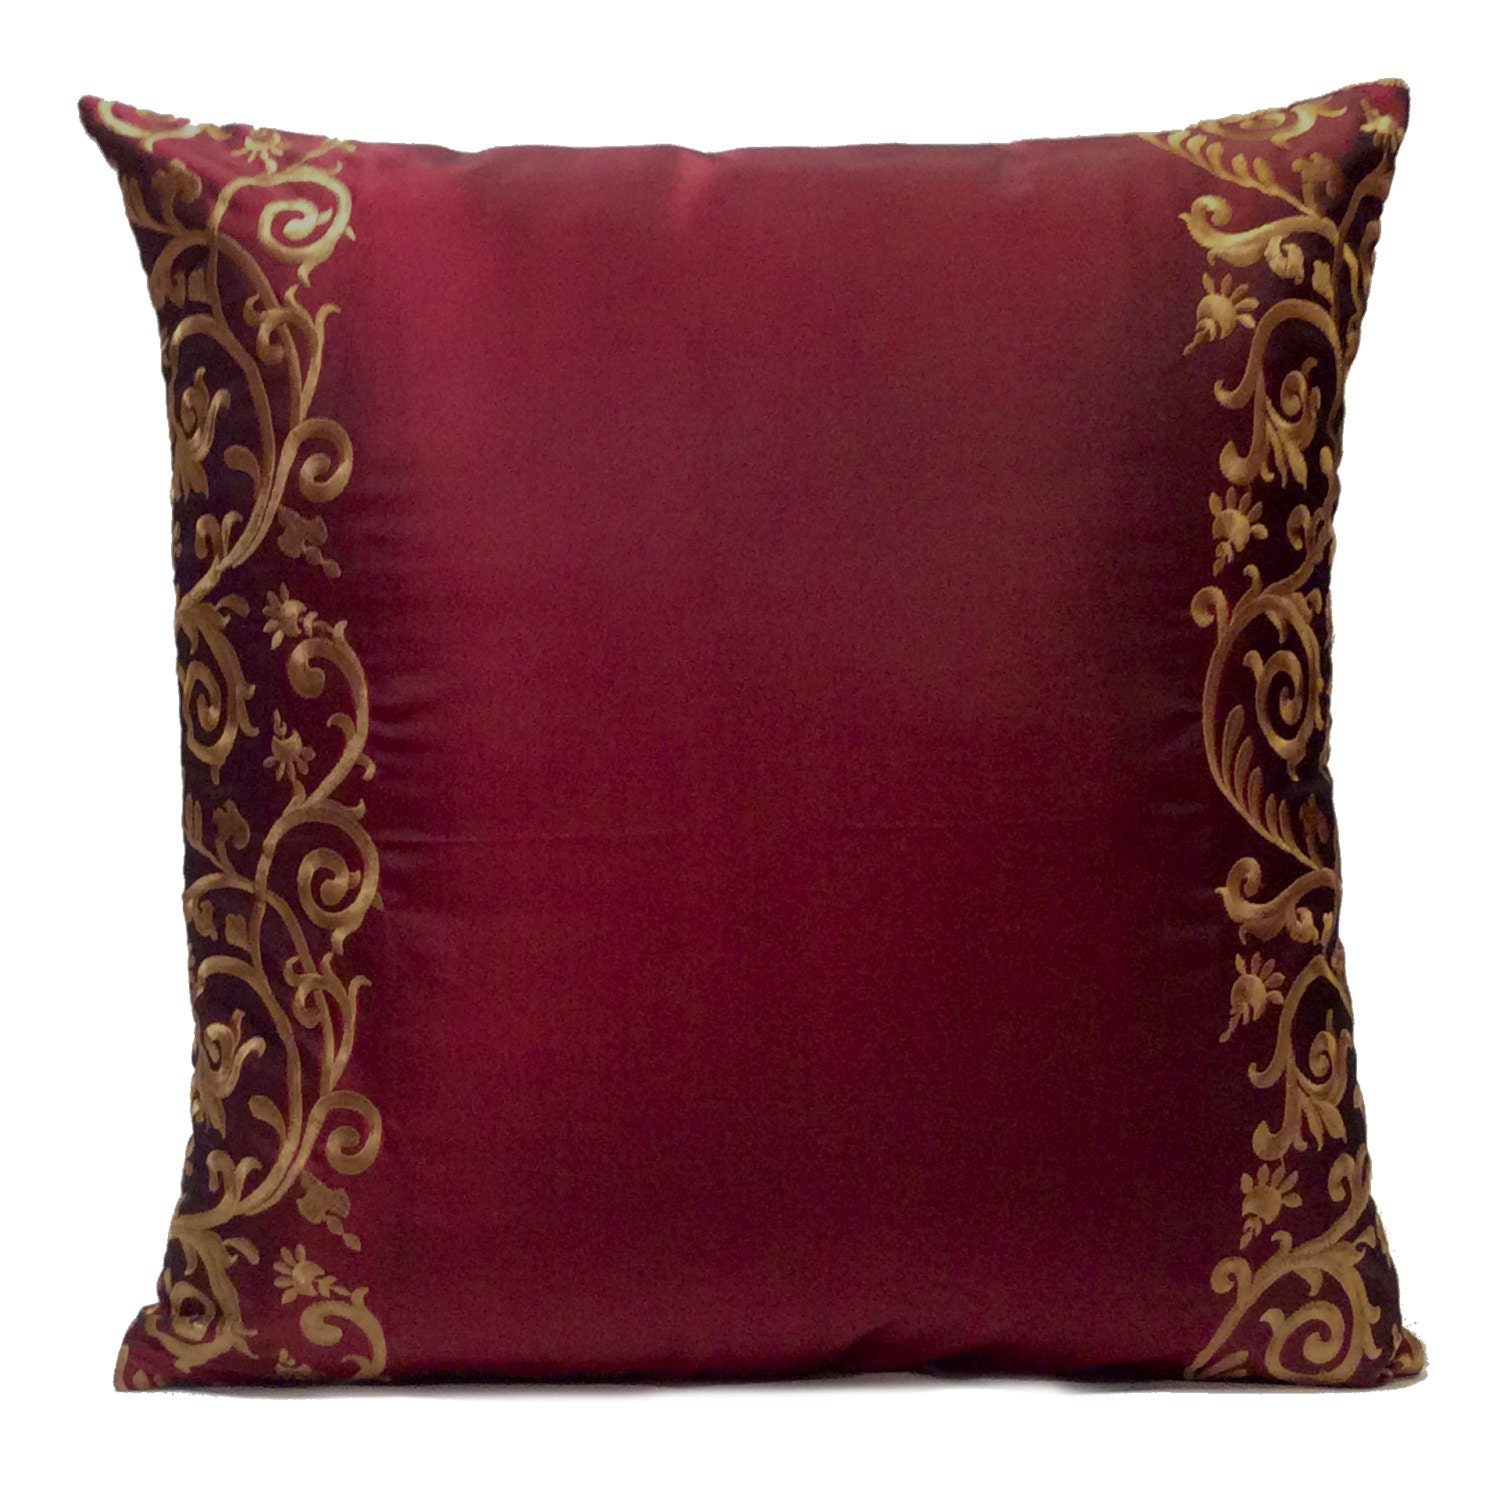 Burgundy Pillow Throw Pillow Cover Decorative Pillow Cover